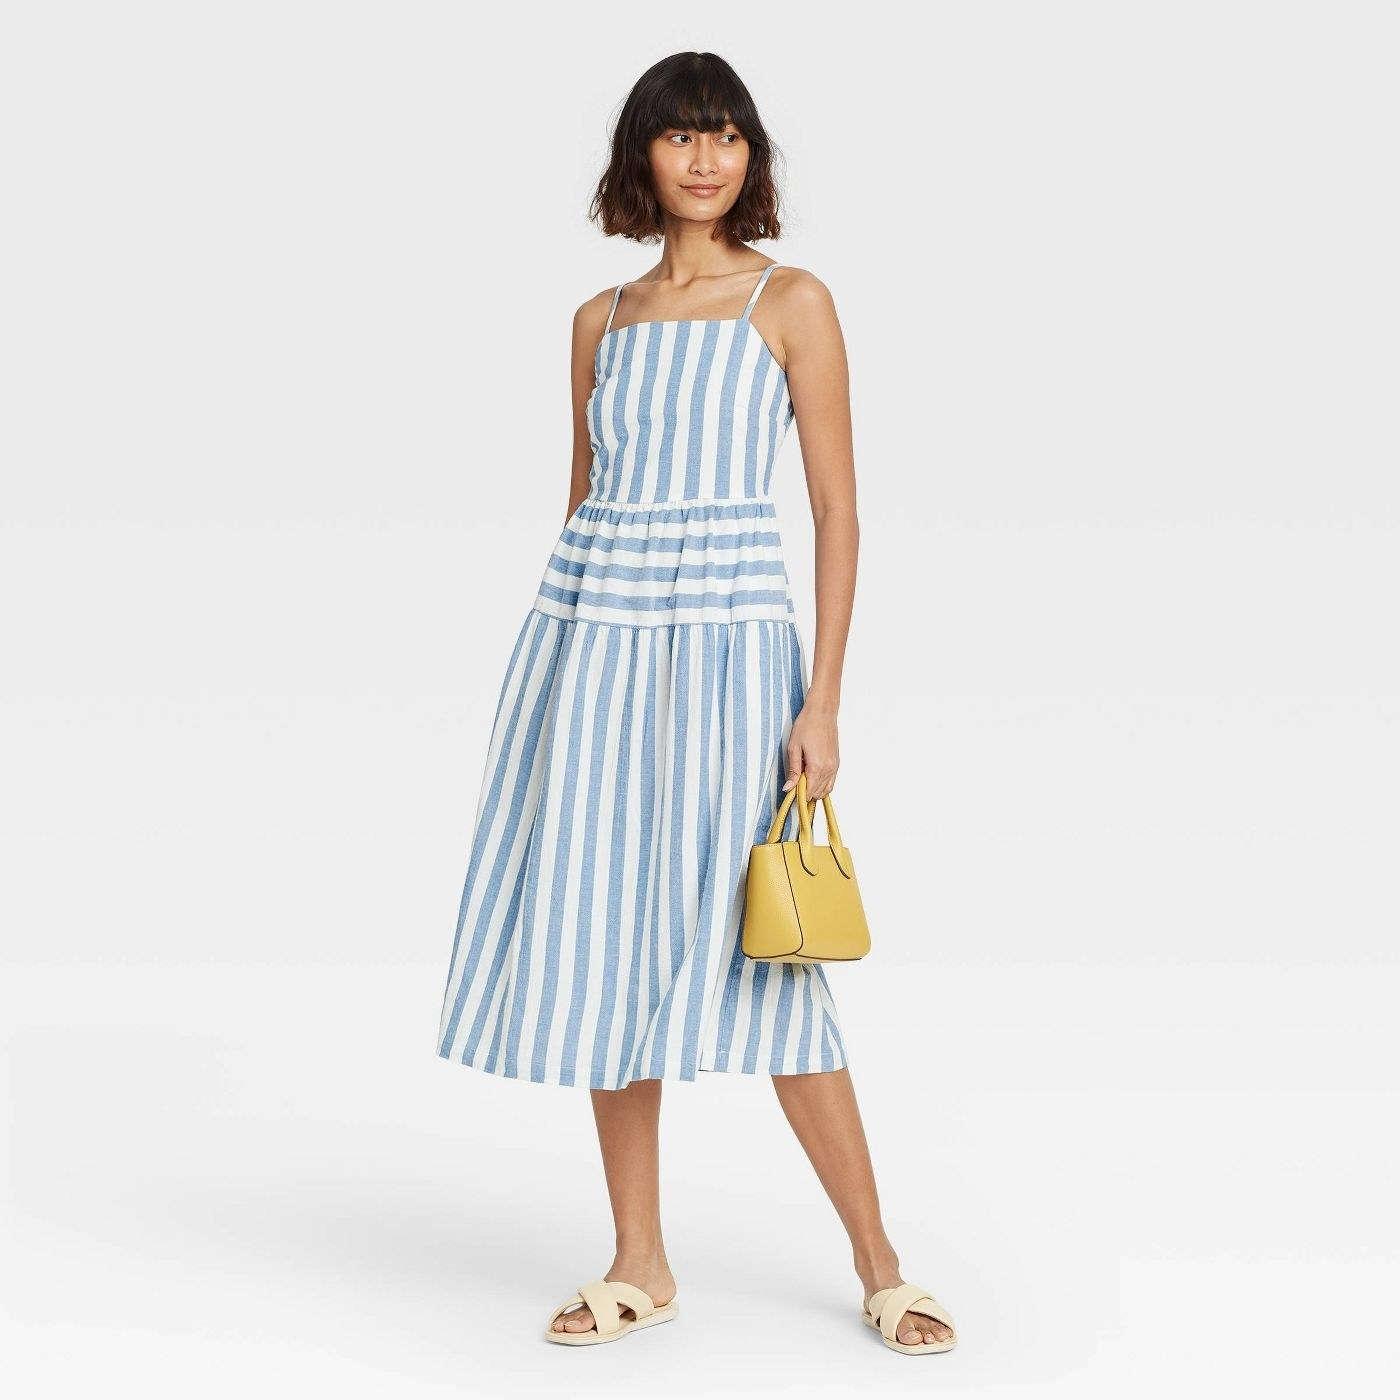 Model wearing a blue and white striped dress that goes past the ankle